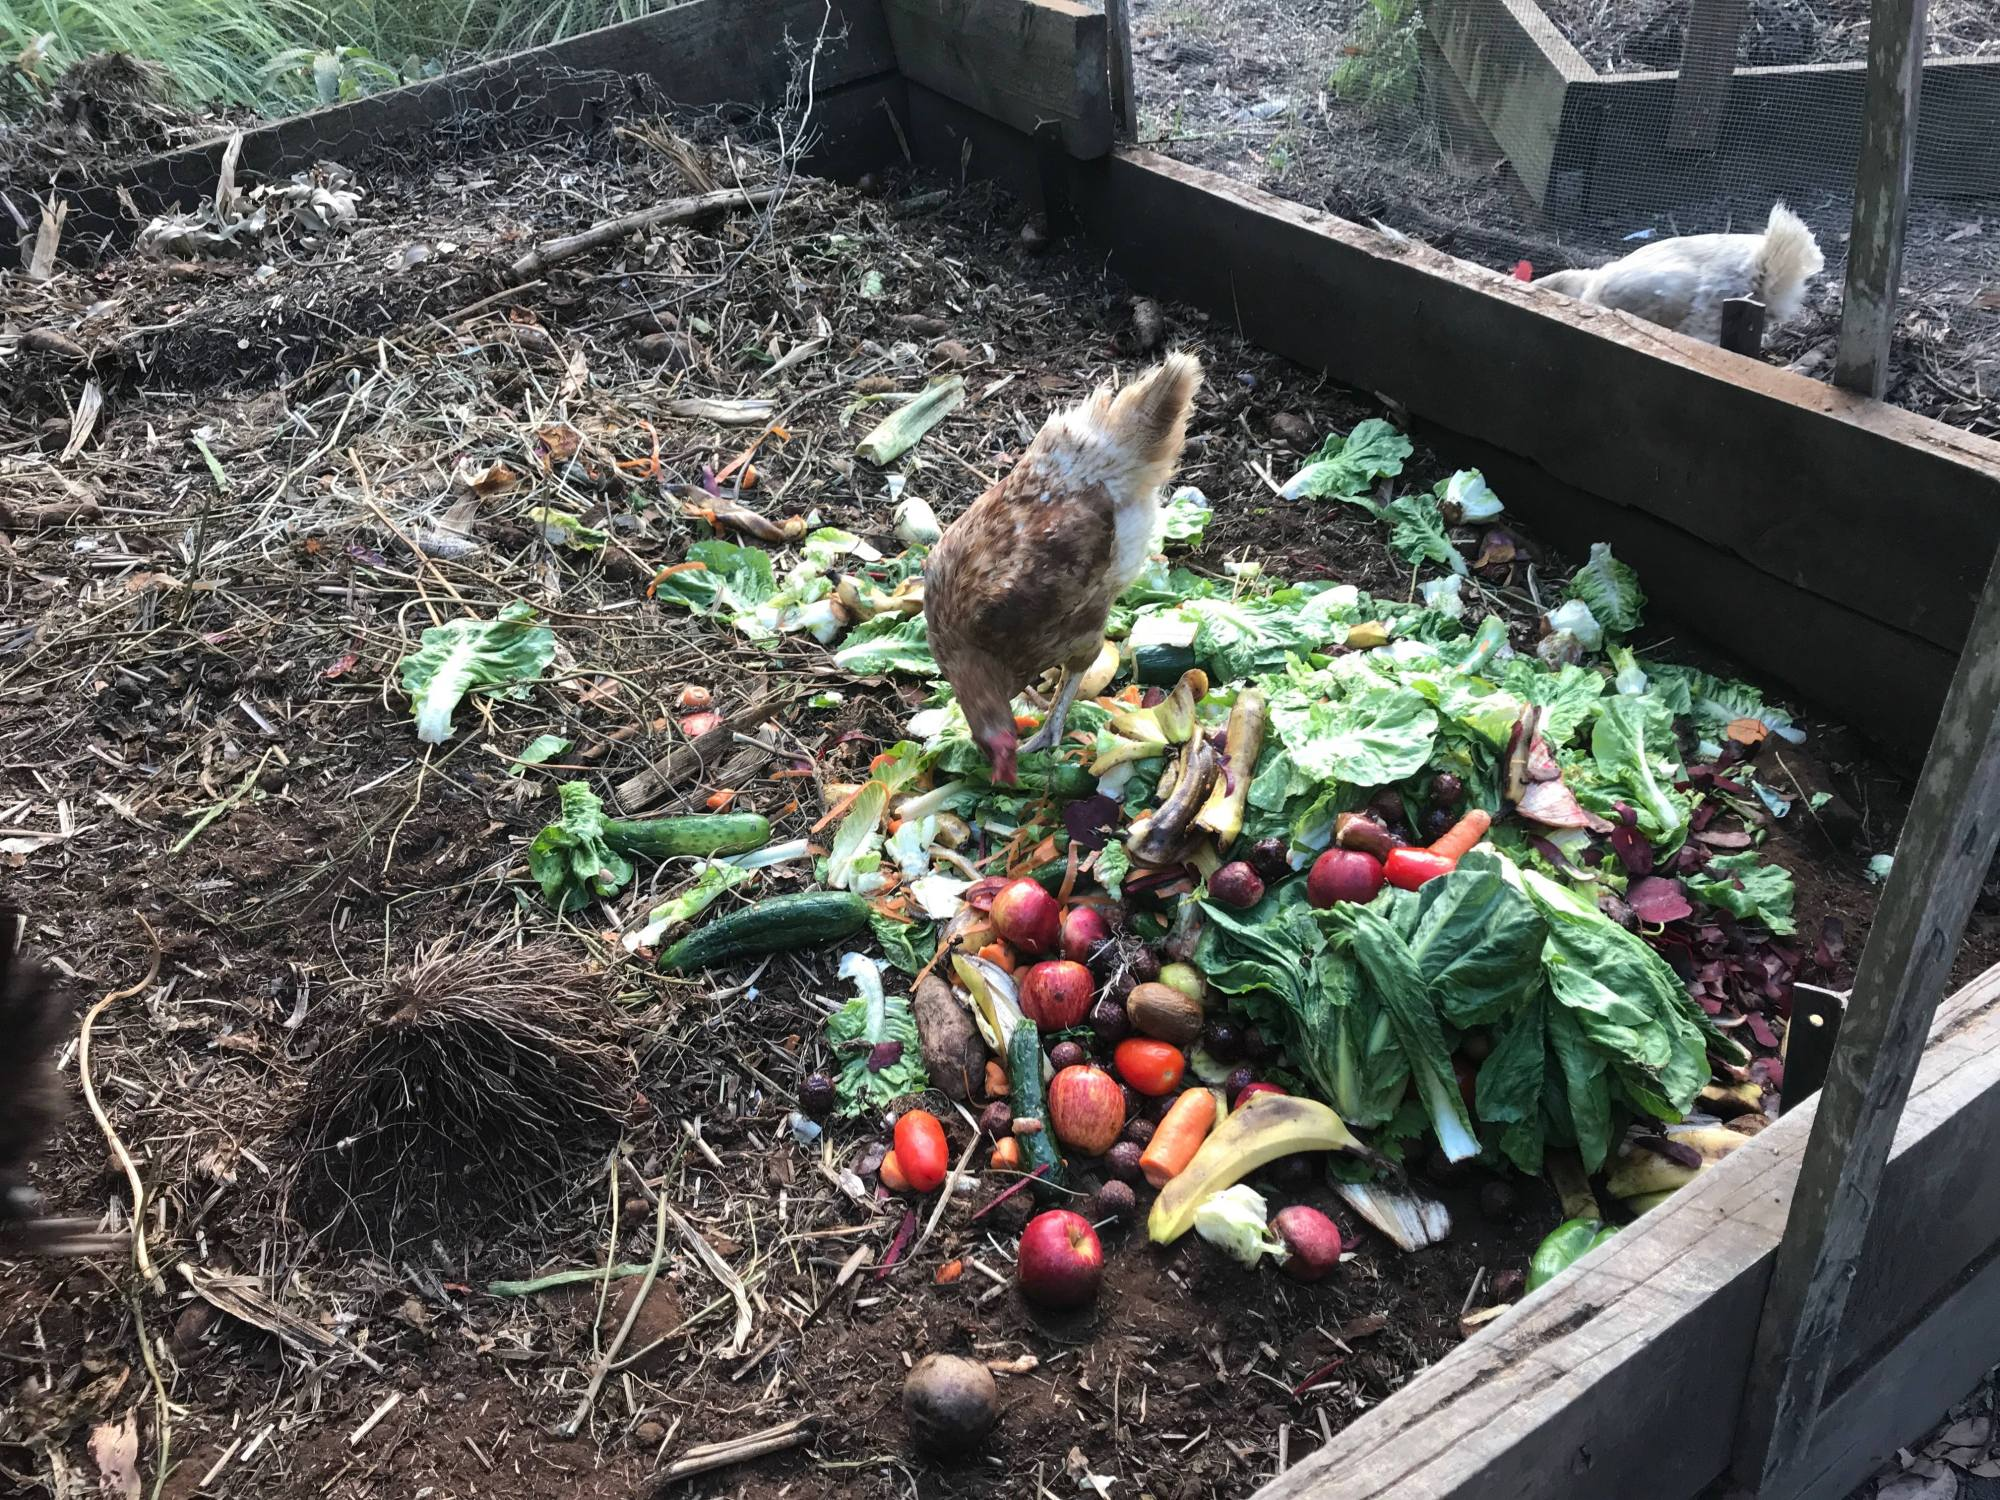 A hen pecks at cooling summer greens, turning it into compost.